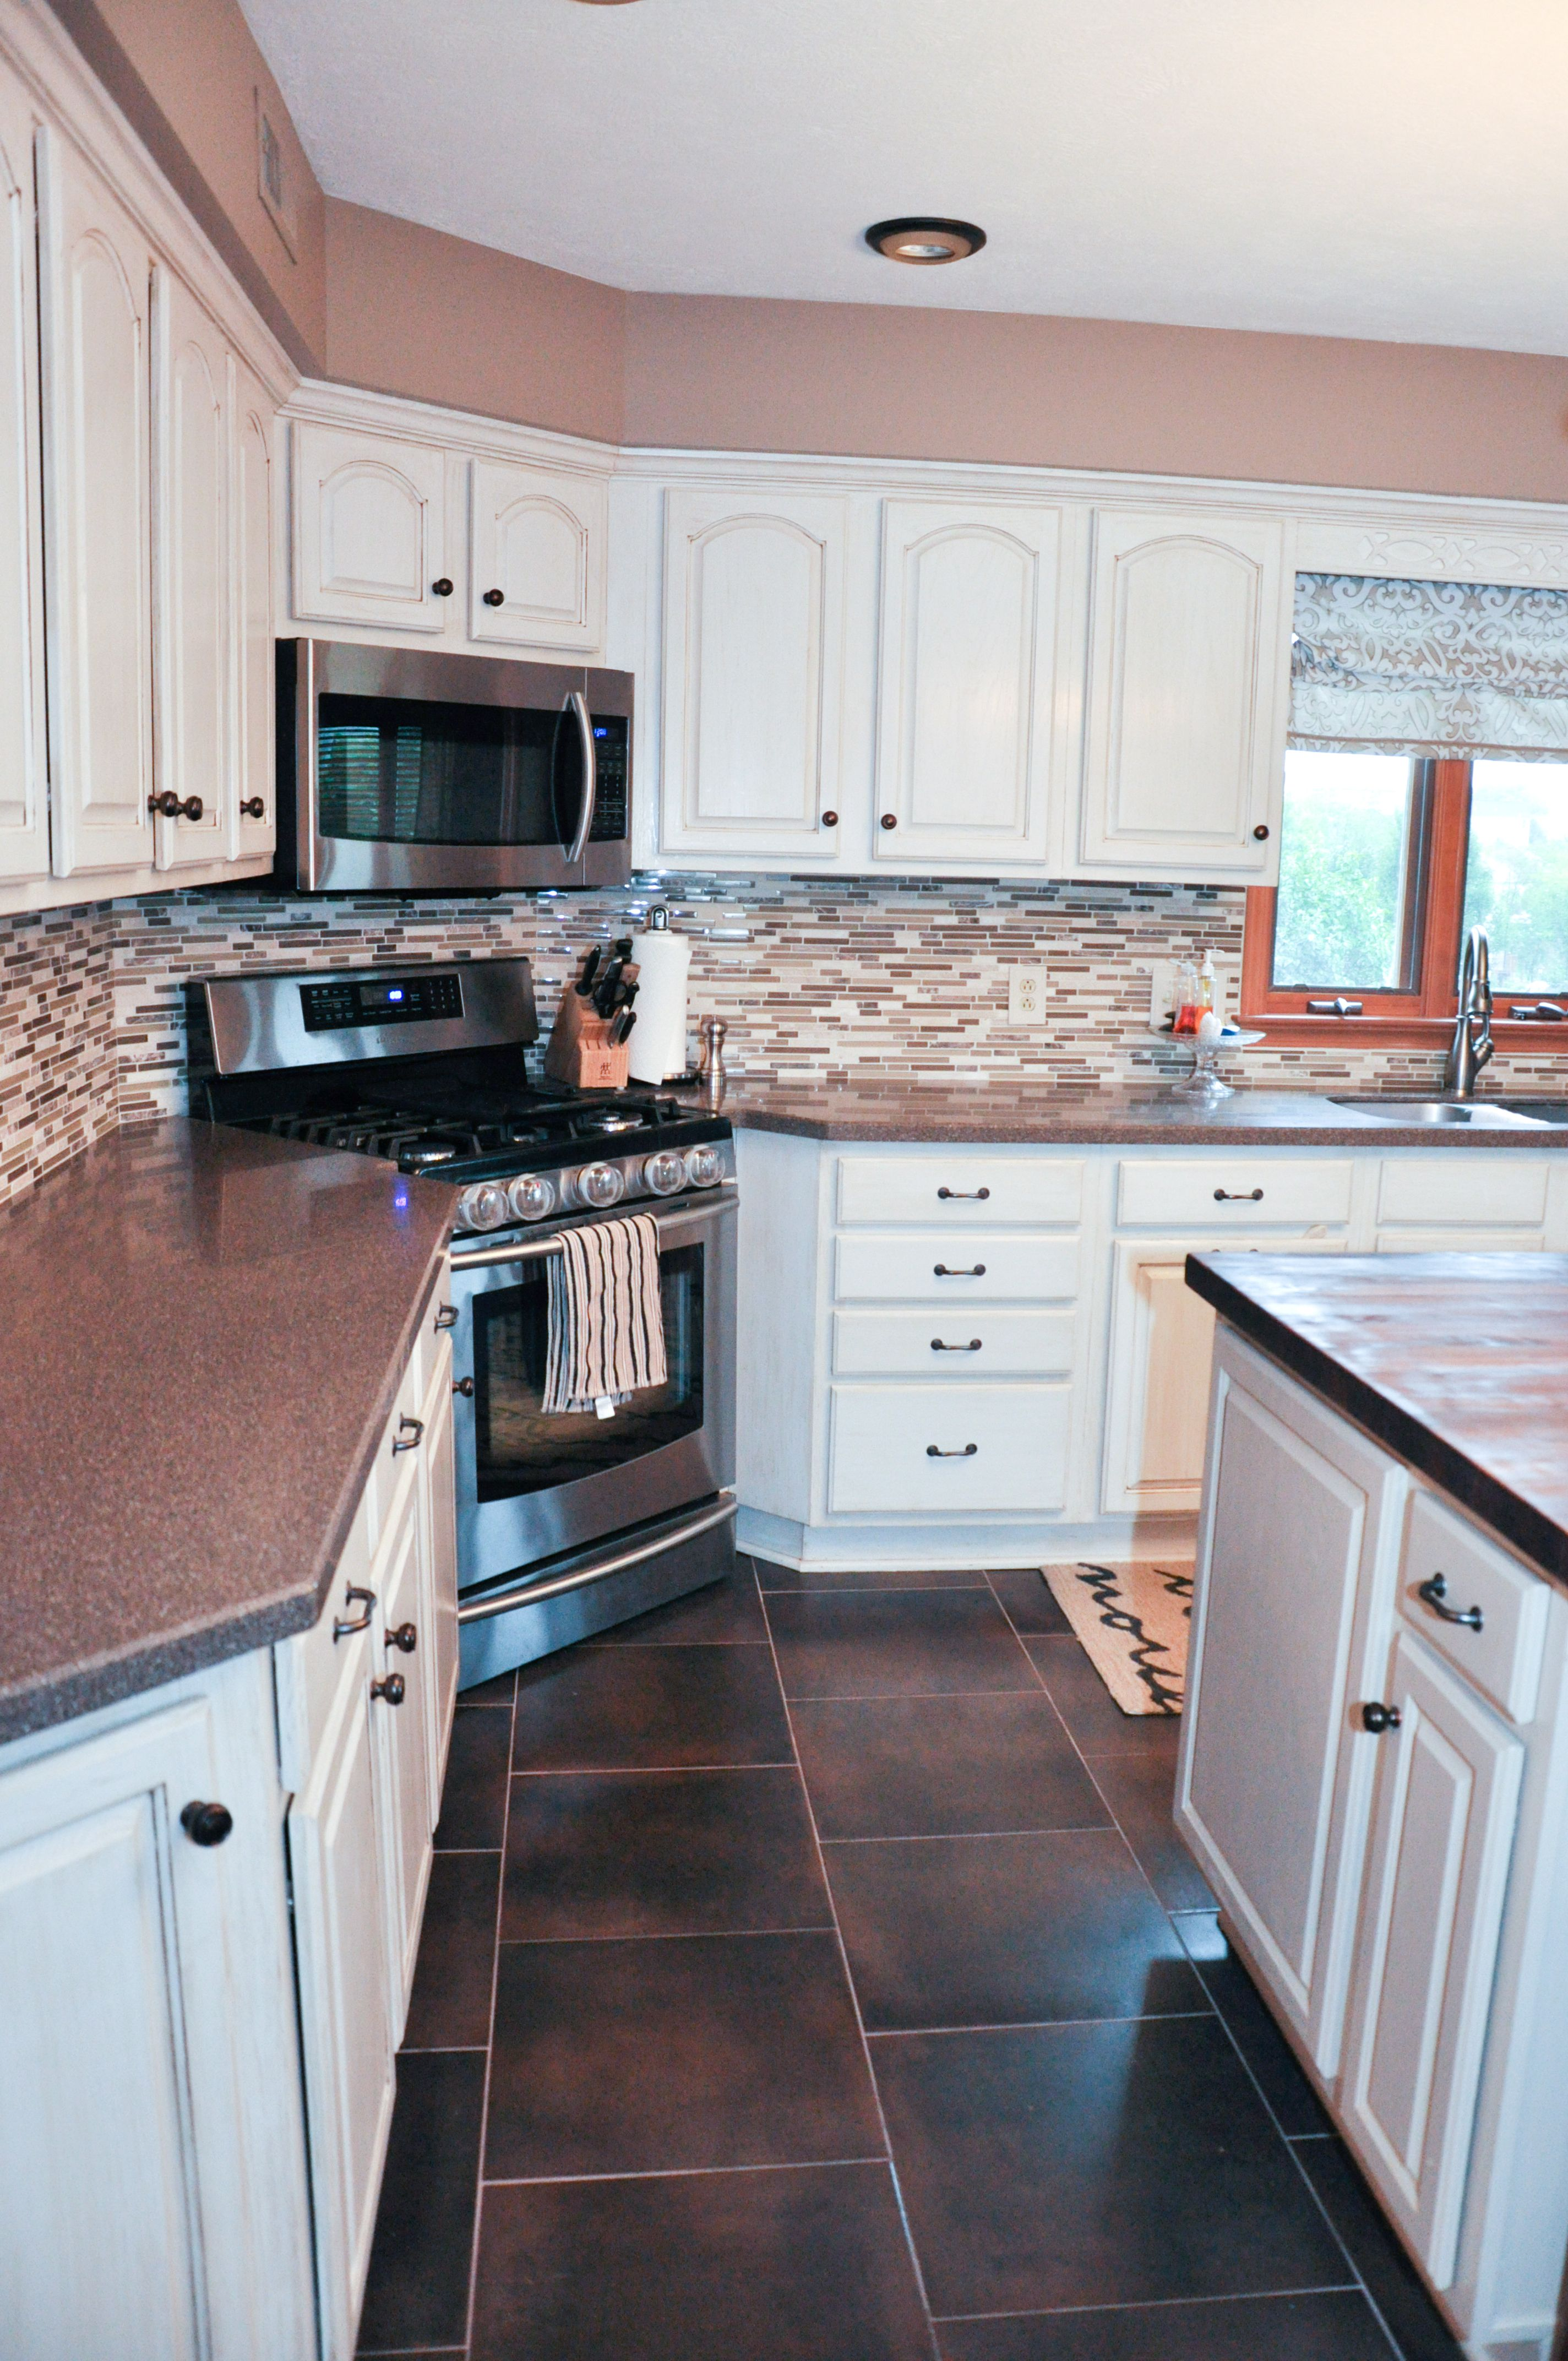 for kitchen use use the corner for the stove keeps more counter space and